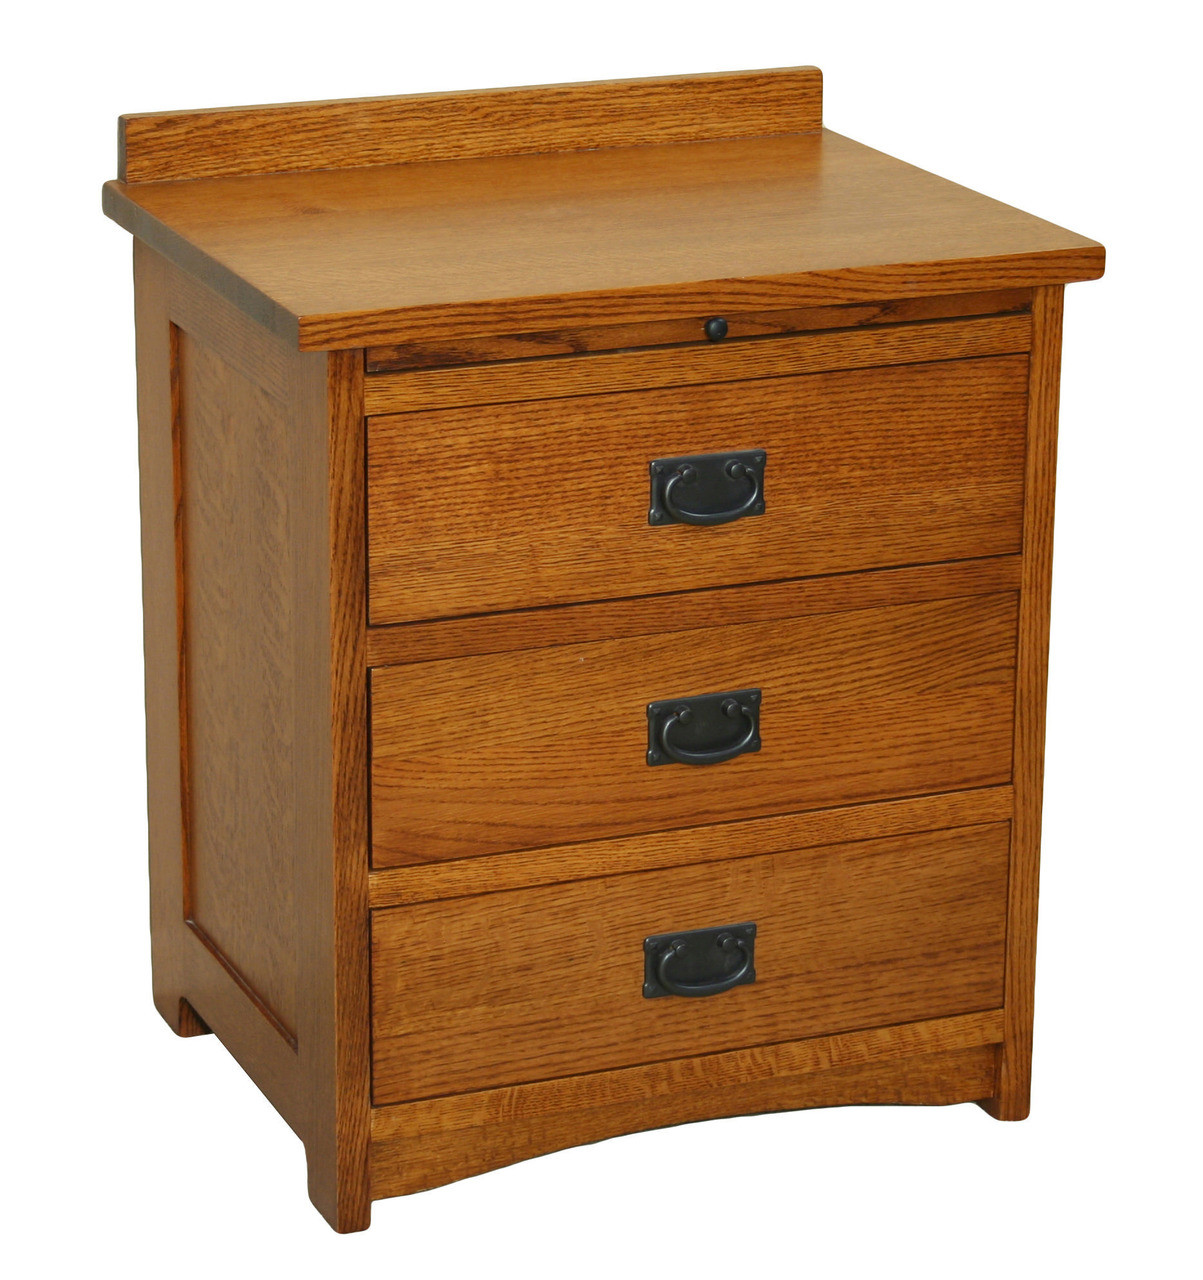 American Mission 3 Drawer Nightstand W Pullout Shelf